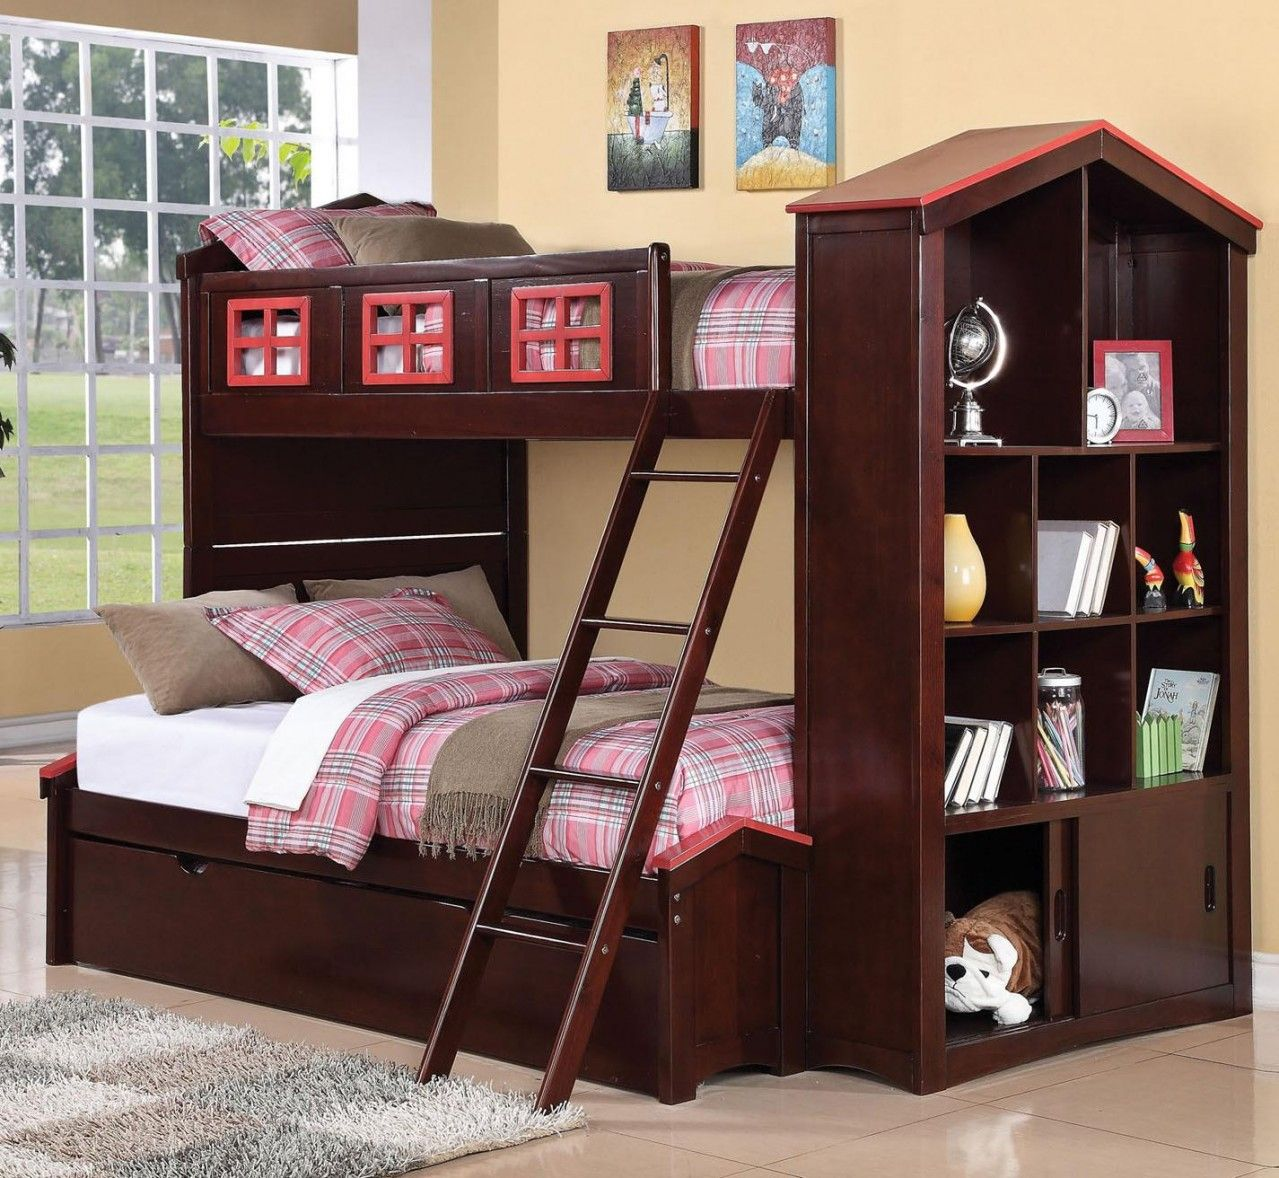 Full Over Twin Bunk Beds With Storage